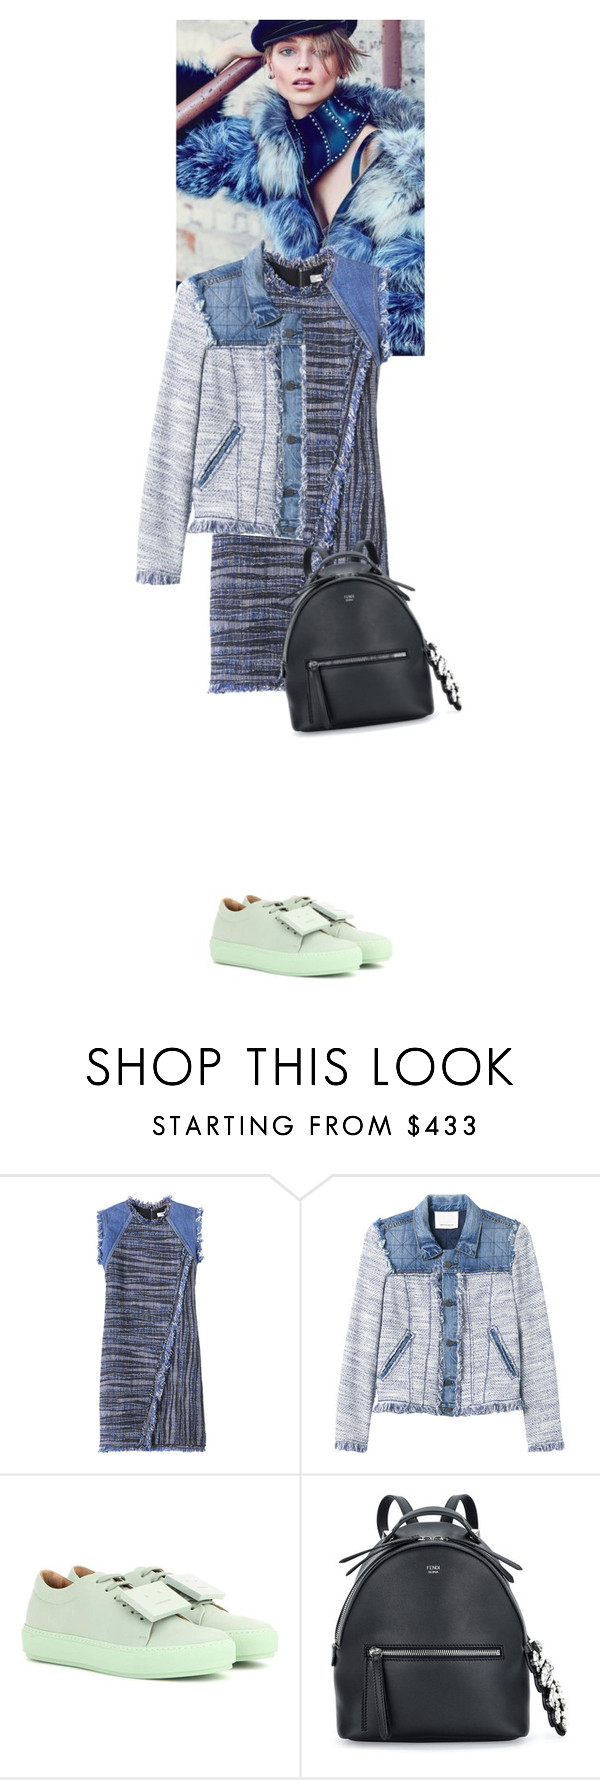 """""""Elizabeth Nyx #5240"""" by canlui ❤ liked on Polyvore featuring Rebecca Taylor, Acne Studios, Fendi, women's clothing, women, female, woman, misses, juniors and tweed"""